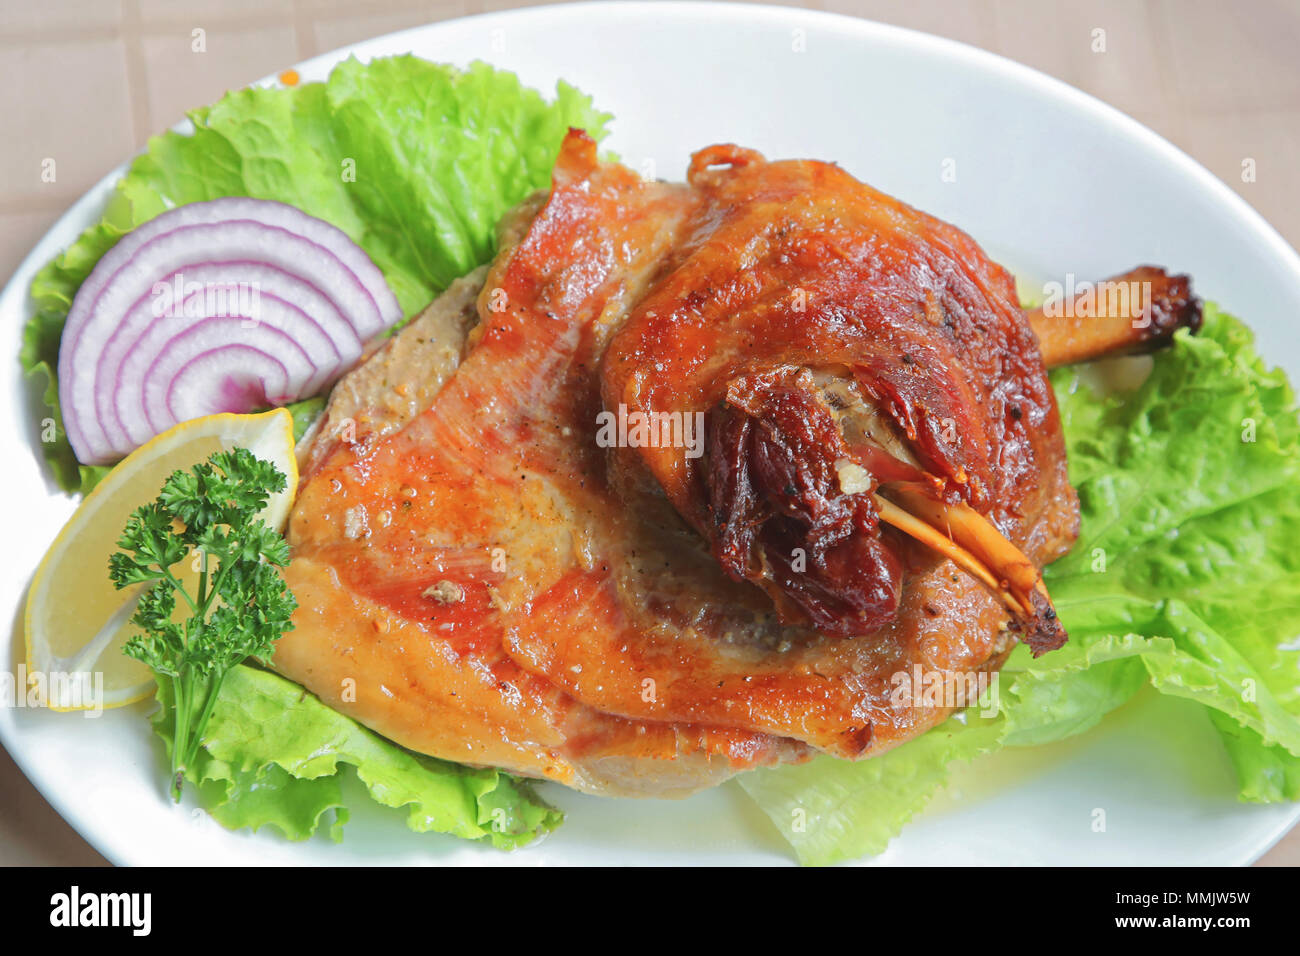 Roasted Lamb Shank Served With Salad and Onion - Stock Image